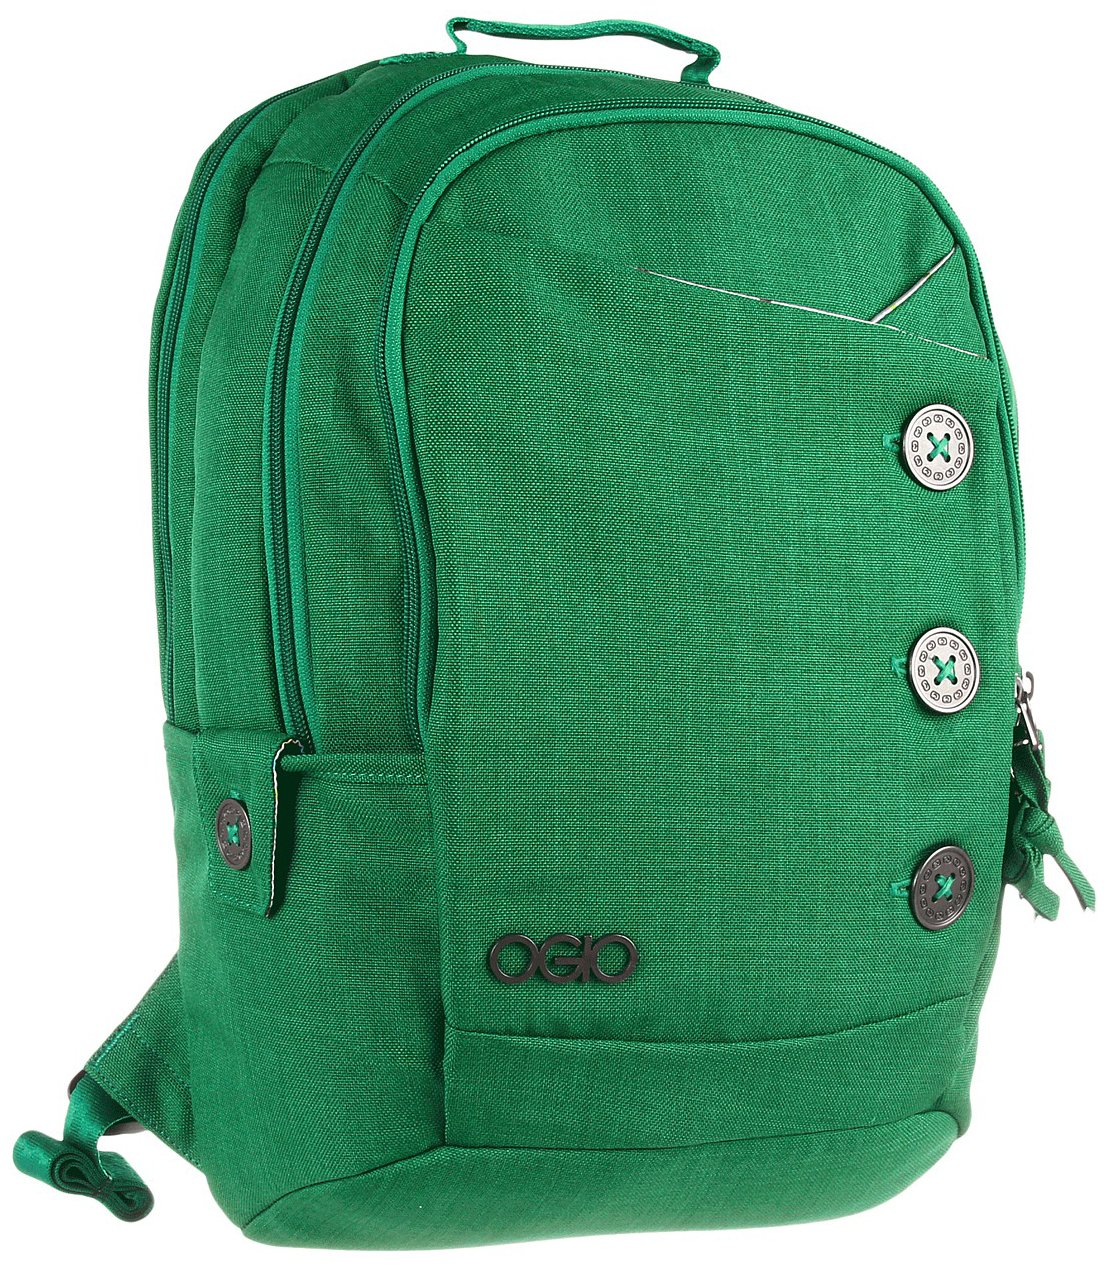 Ogio Soho Laptop Backpack pUXOtk8Z